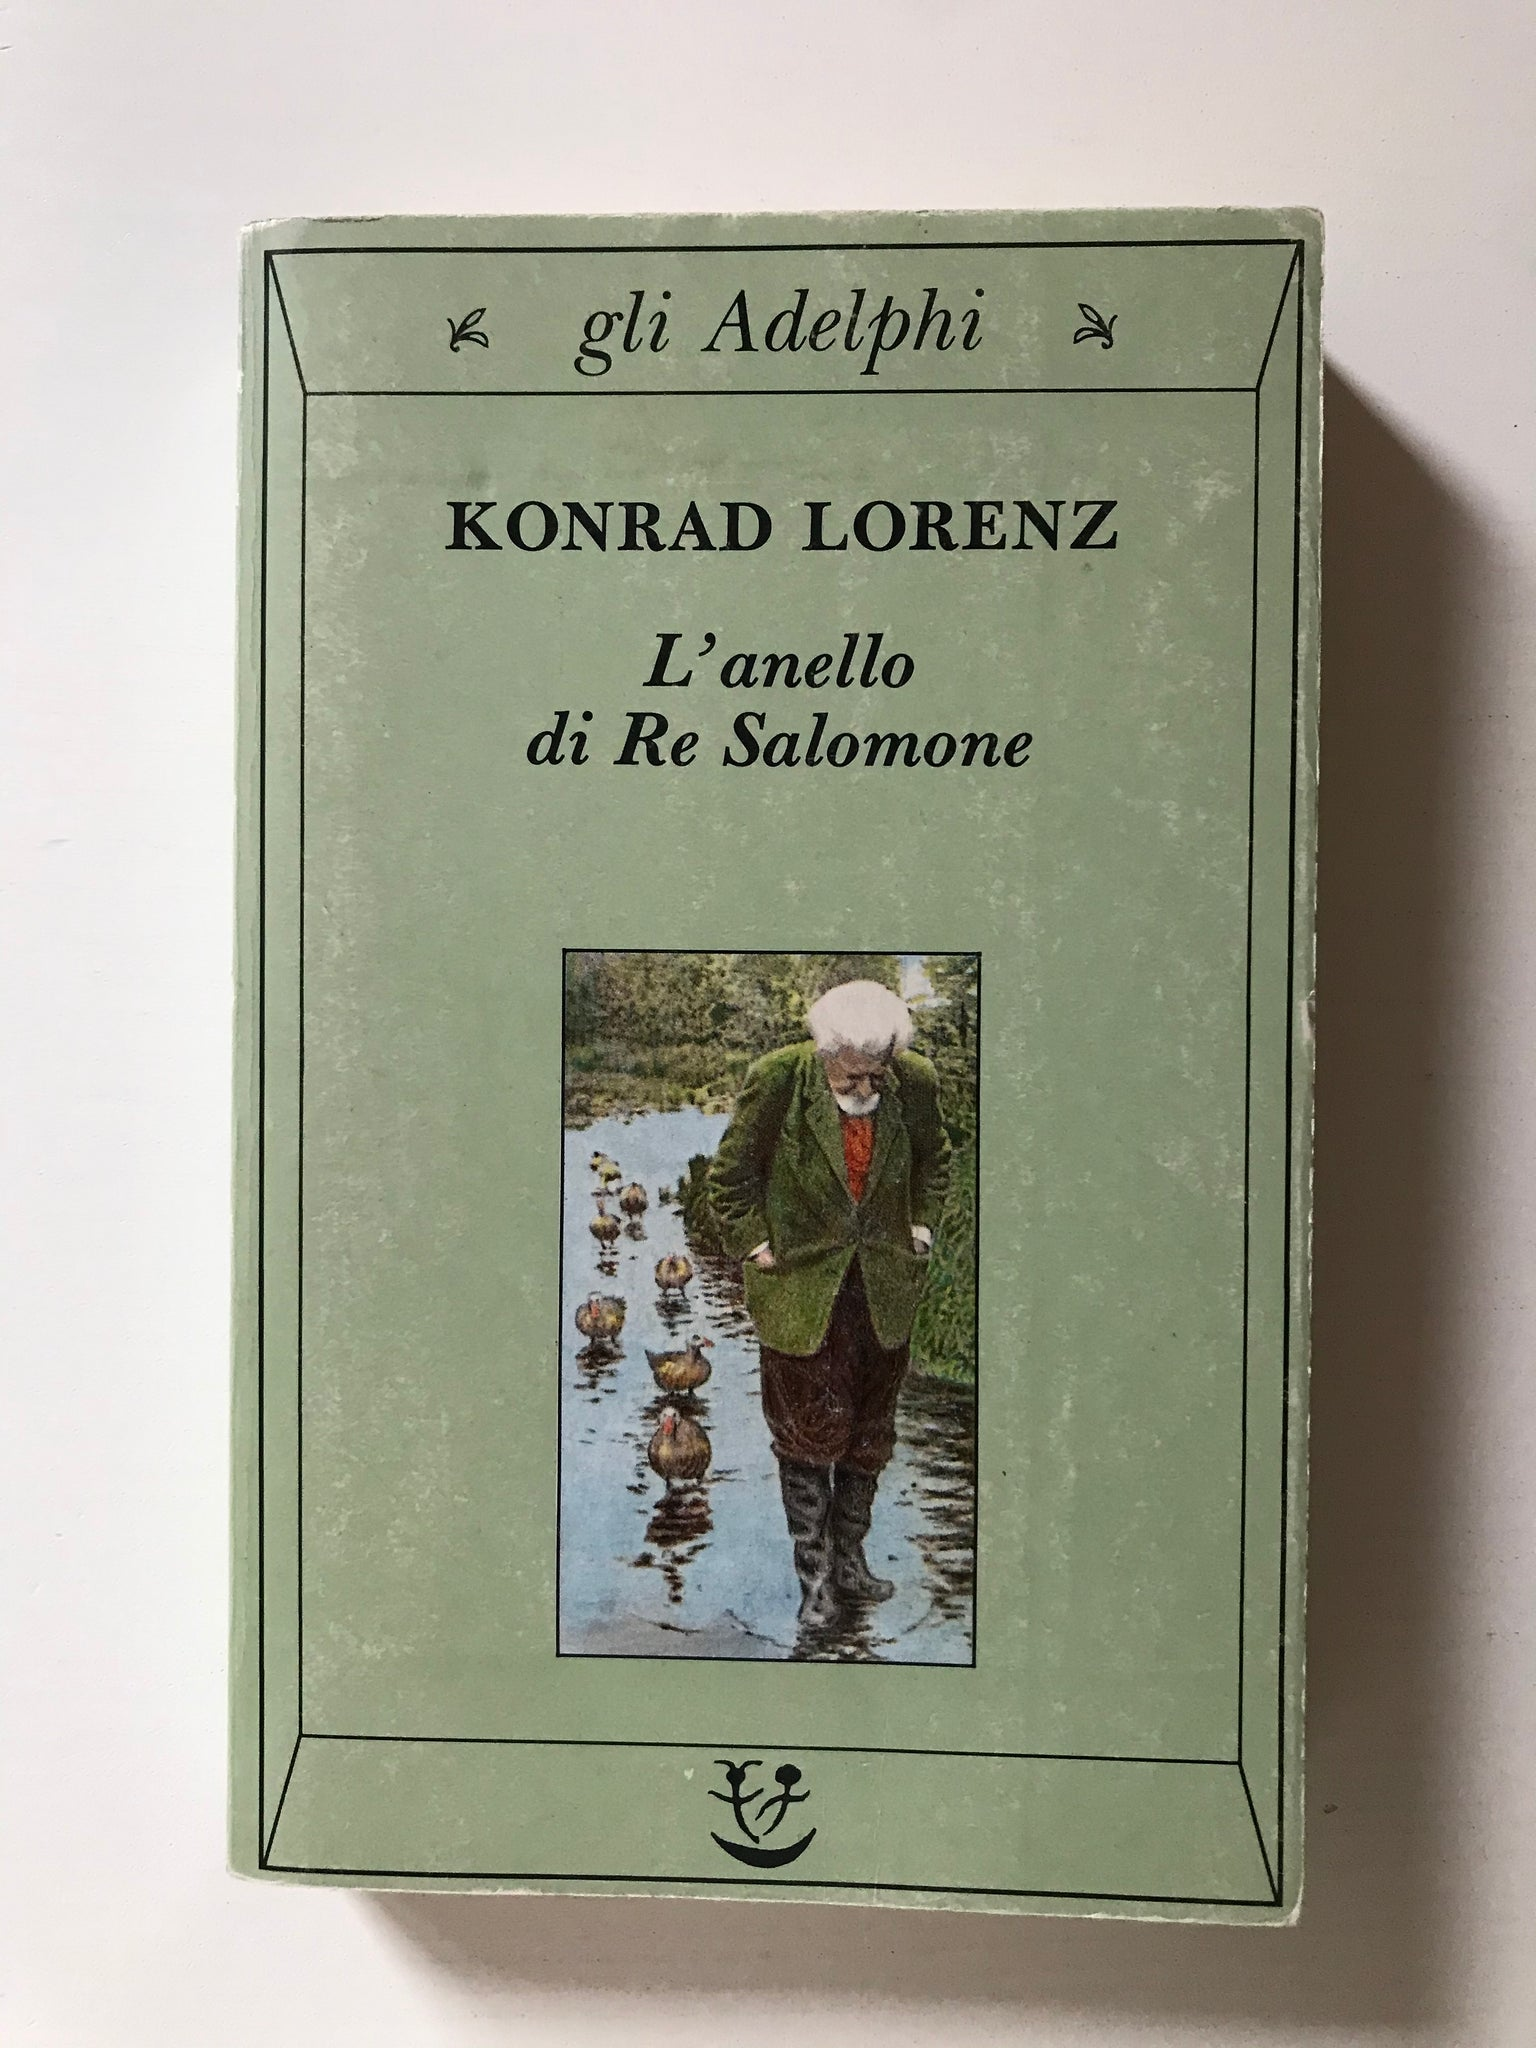 Konrad Lorenz - L'anello di Re Salomone